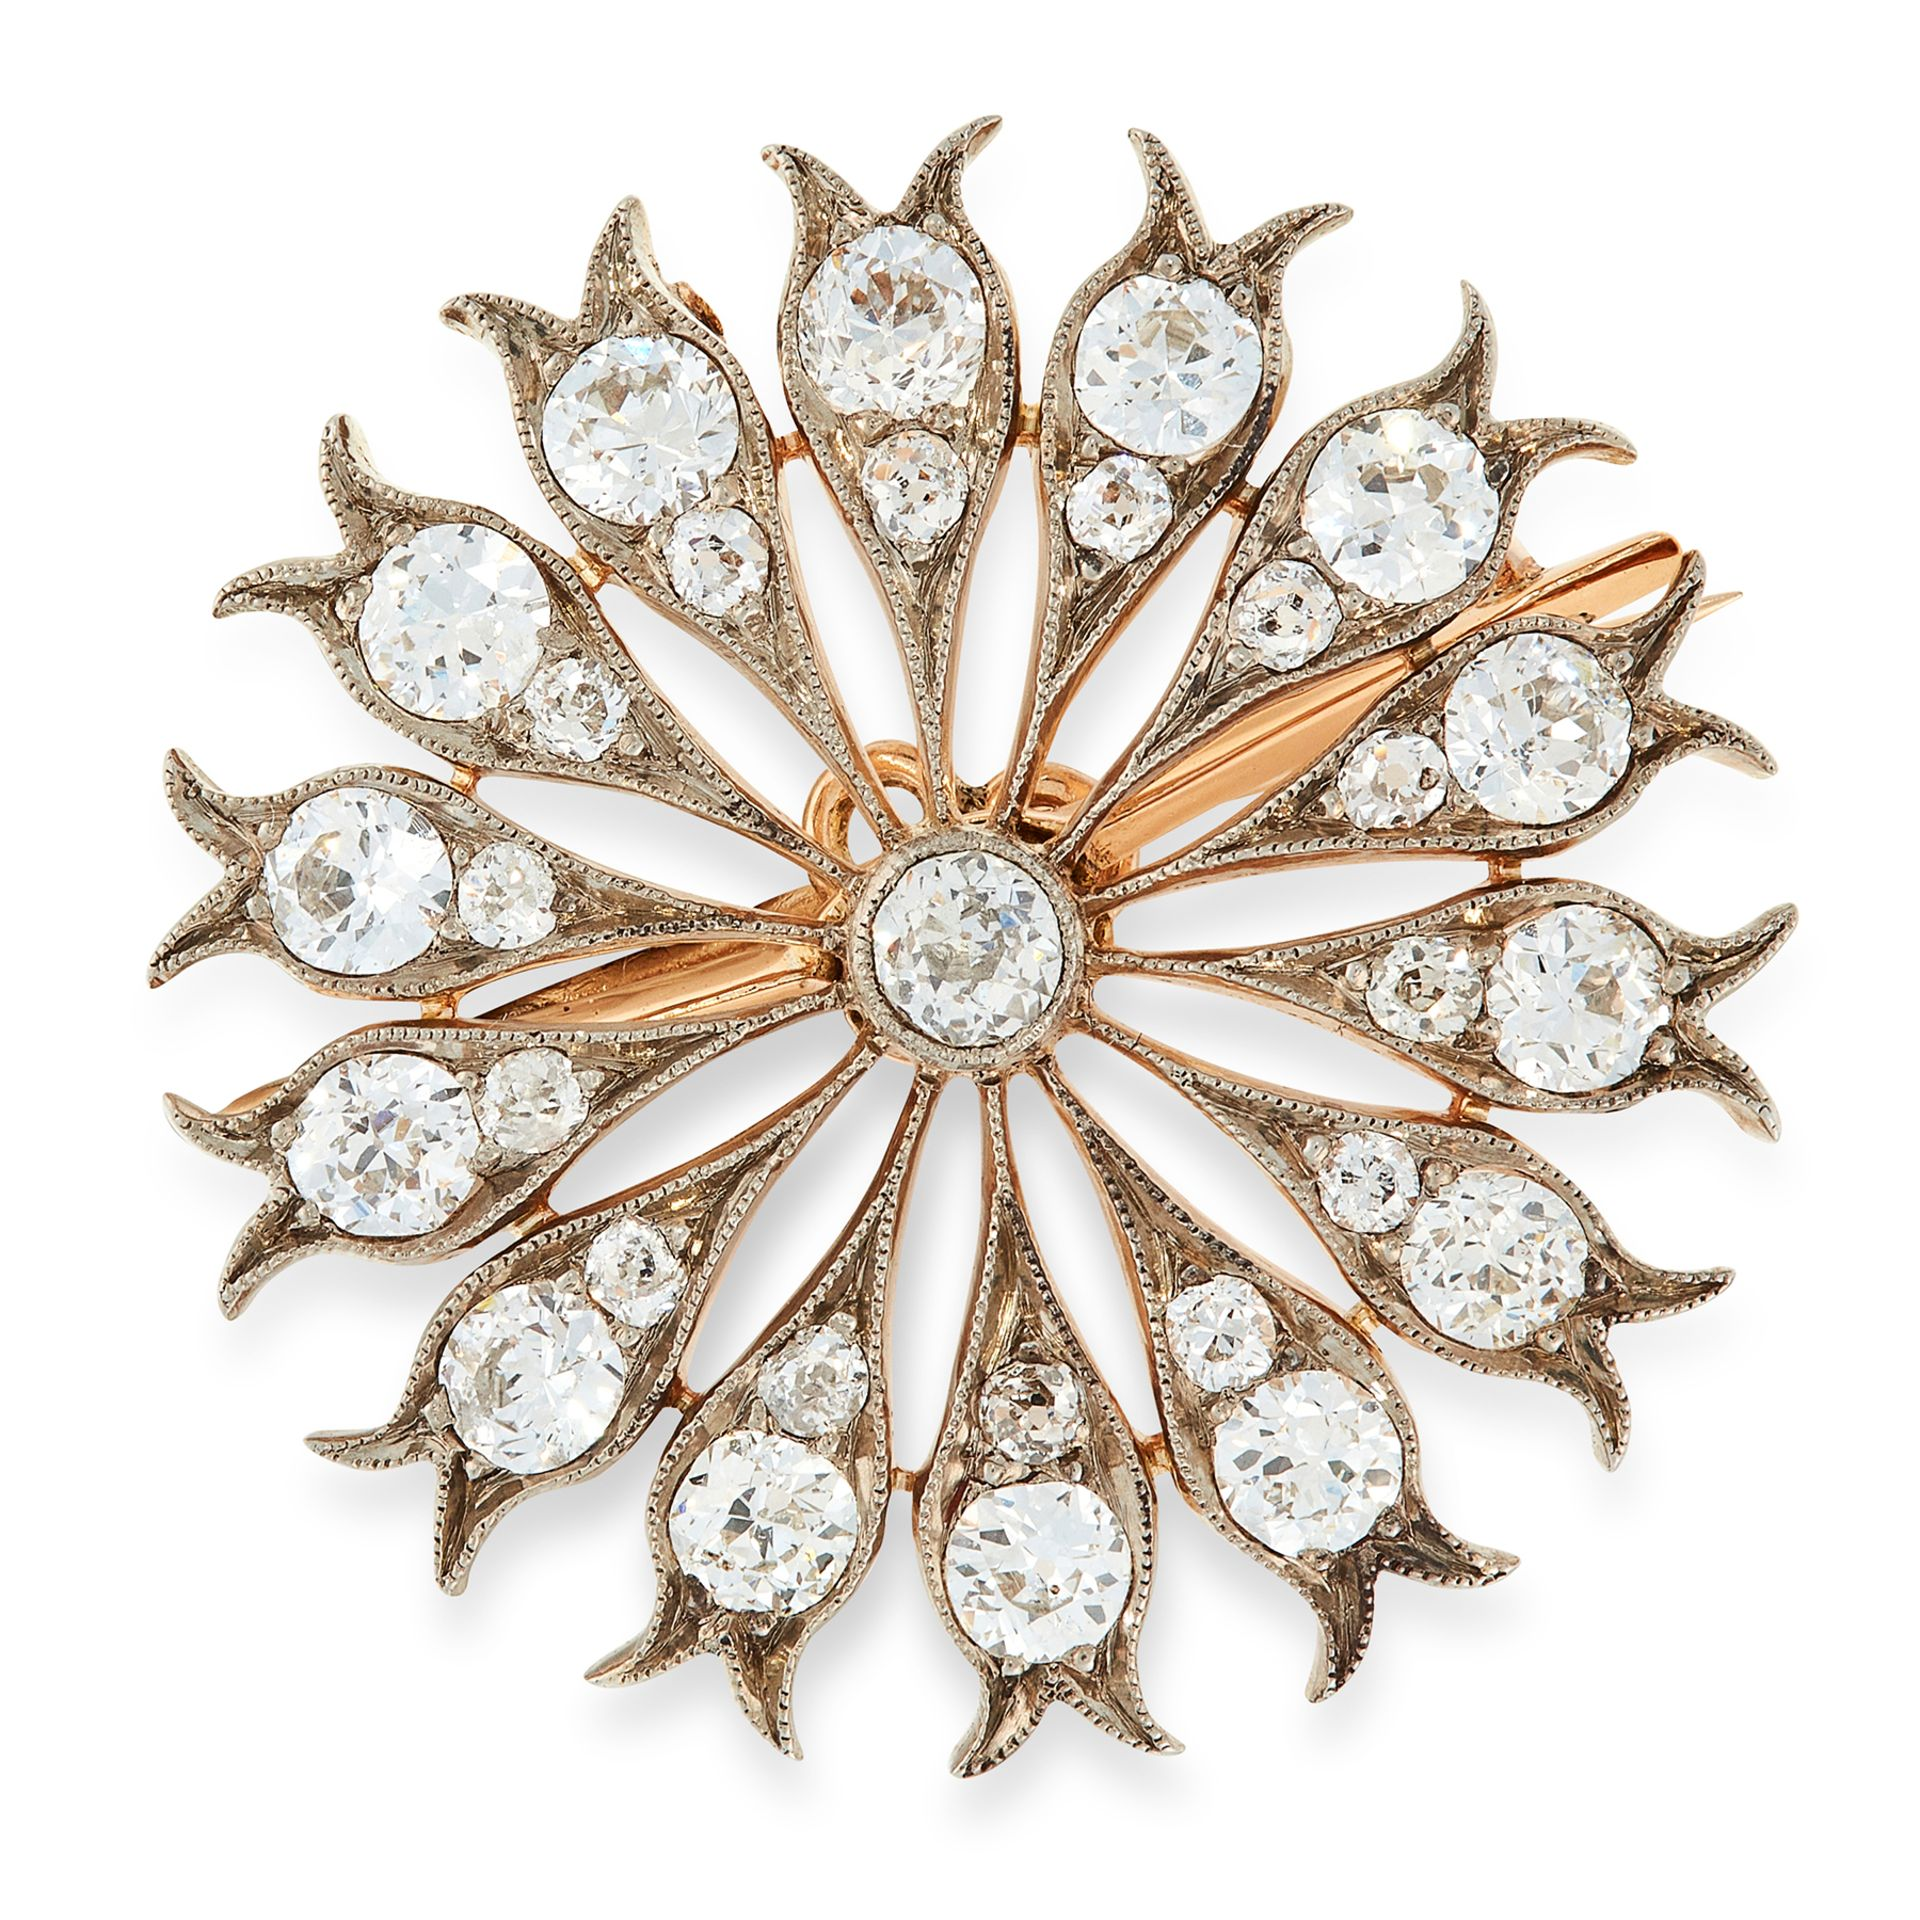 AN ANTIQUE DIAMOND BROOCH / PENDANT in yellow gold and silver, set with a central old cut diamond